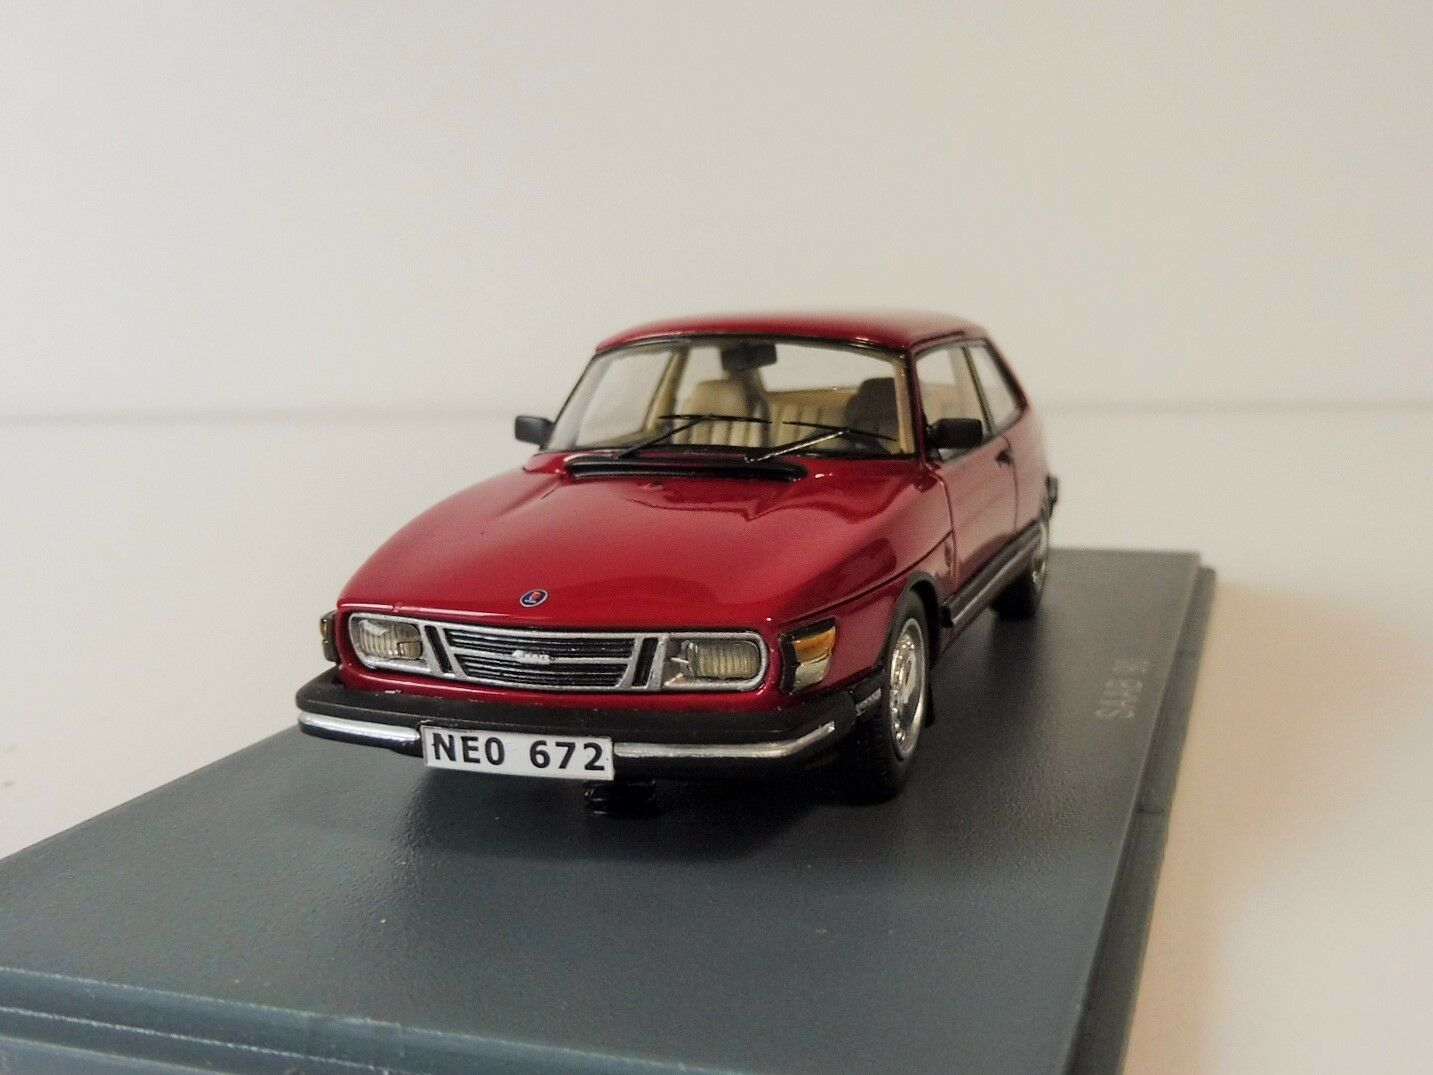 Saab 90 Coupé 1985 Cherry rouge 1 43 Neoscale Models Neo43672